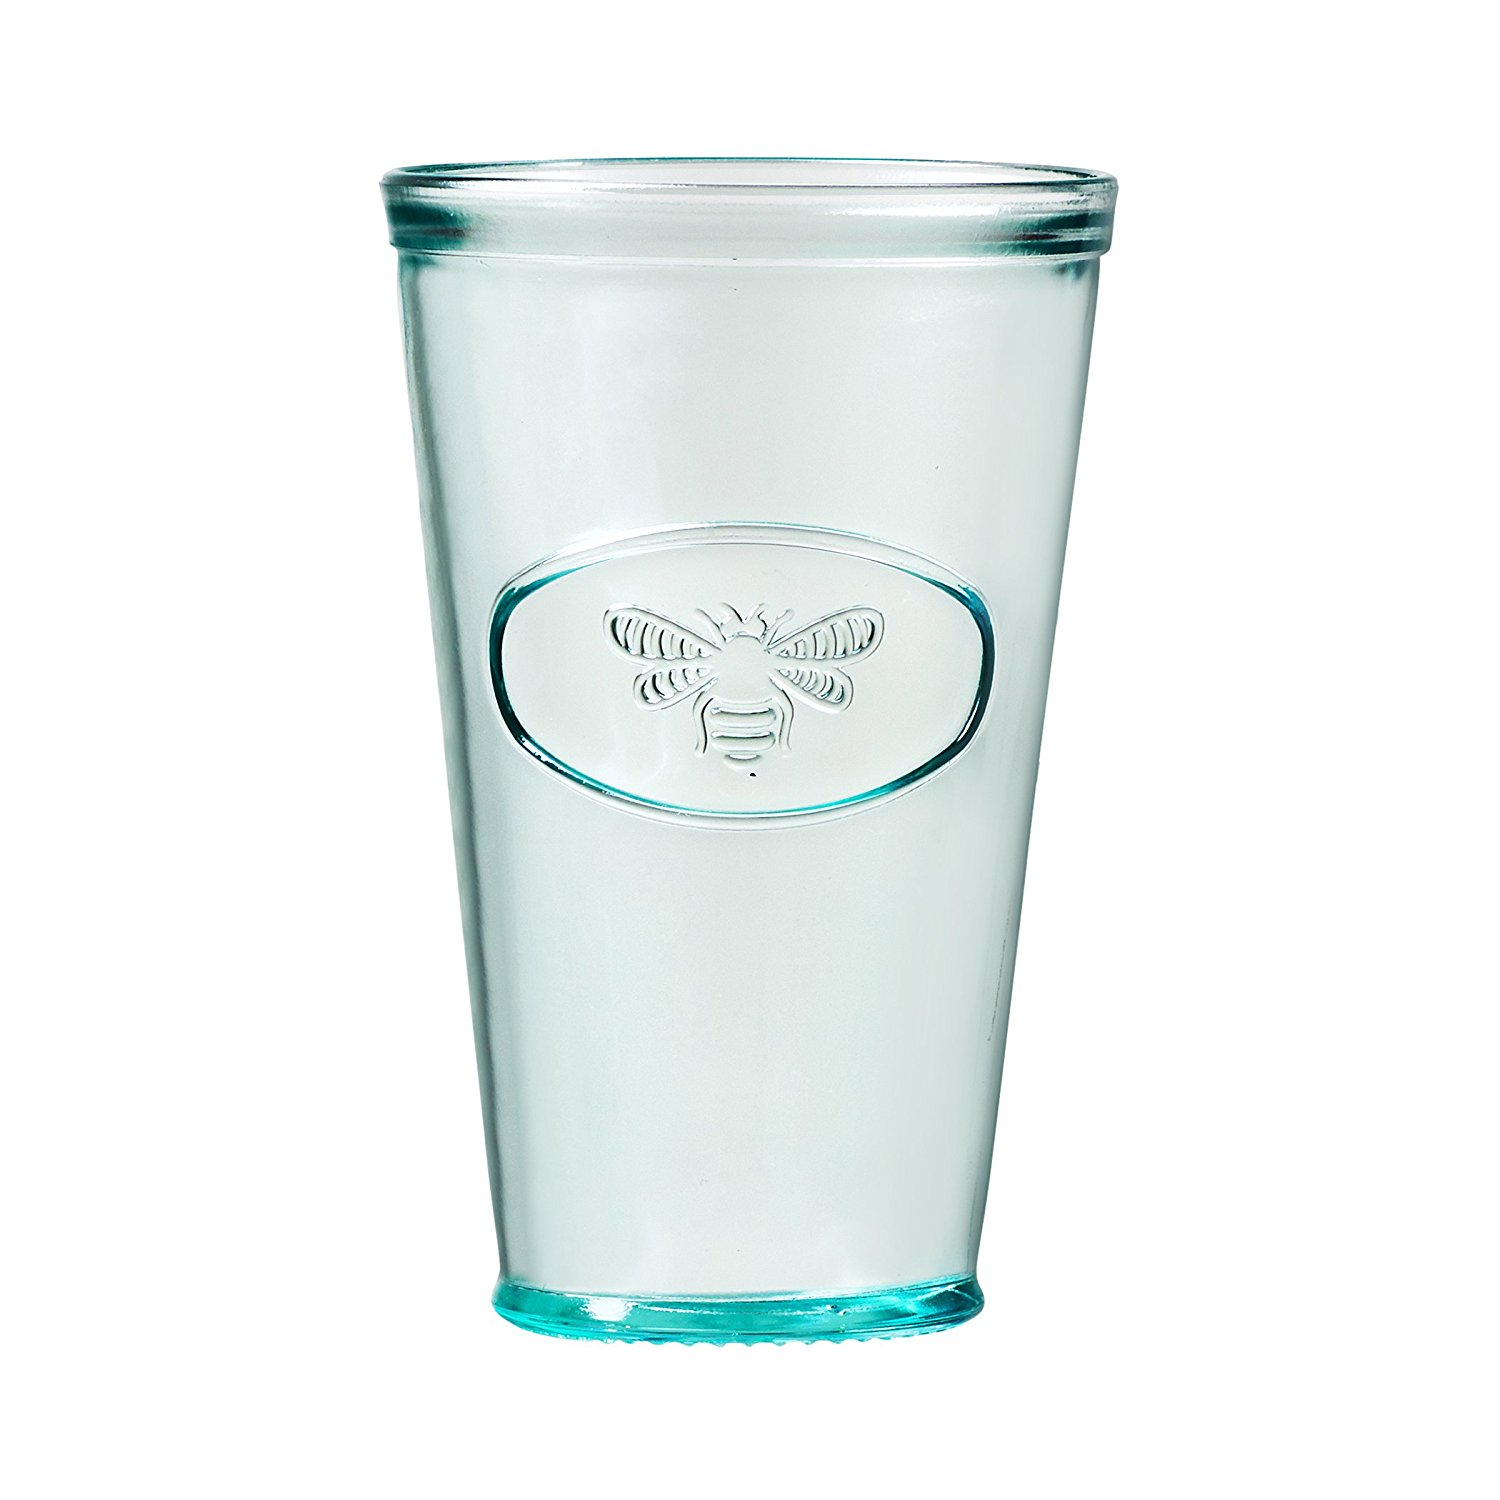 How cute is the little bee detail on this mint green glass?